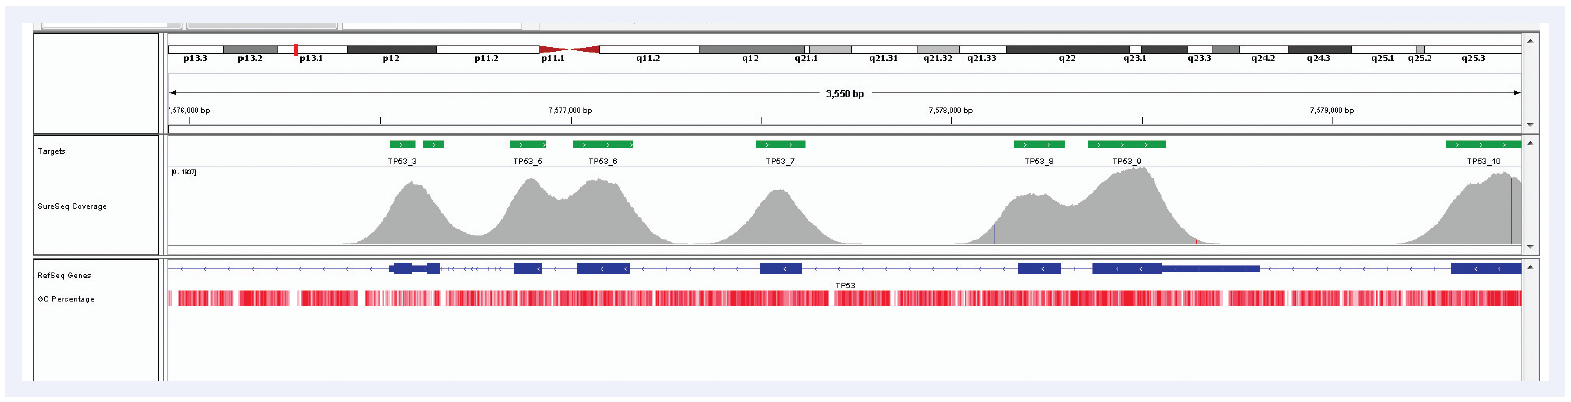 Figure 4: TP53 exons 3 – 9, exceptional uniformity of coverage in spite of the high GC content of the region. Depth of coverage per base (grey). Targeted region (green). Gene coding region as defined by RefSeq (blue). GC percentage (red).